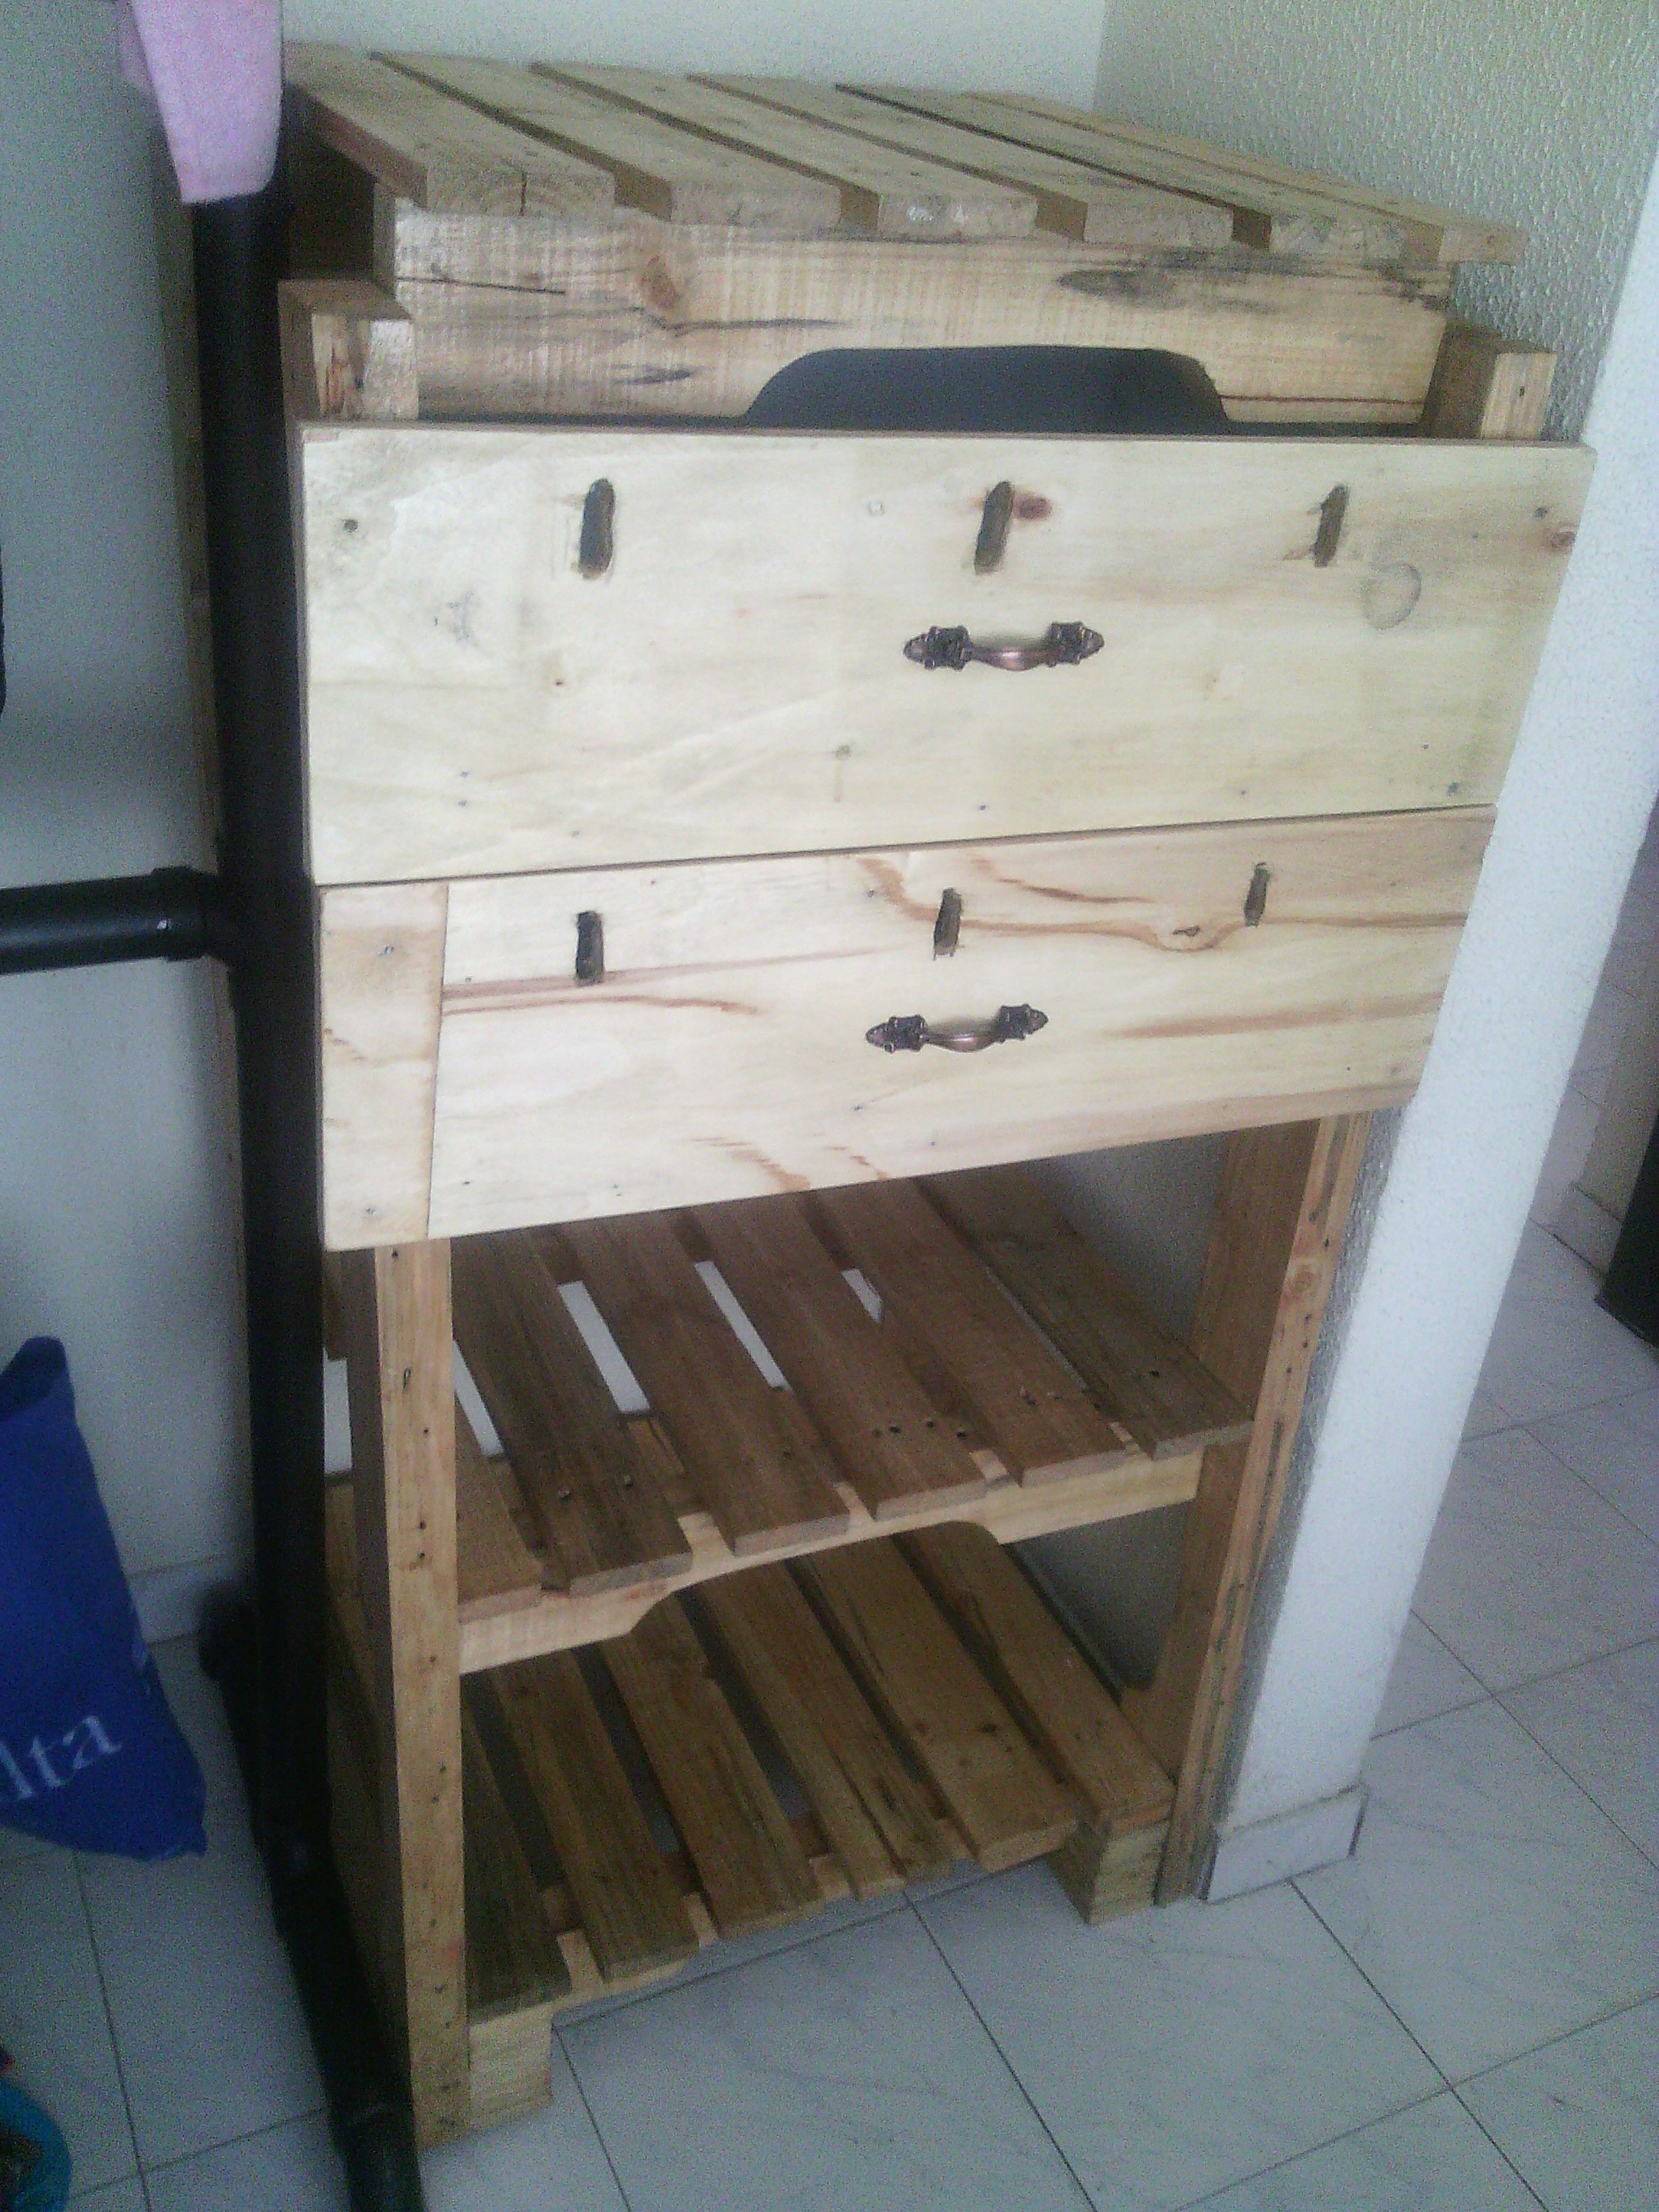 Muebles ropas. palets | House Palets | Pinterest | Palets y Ropa